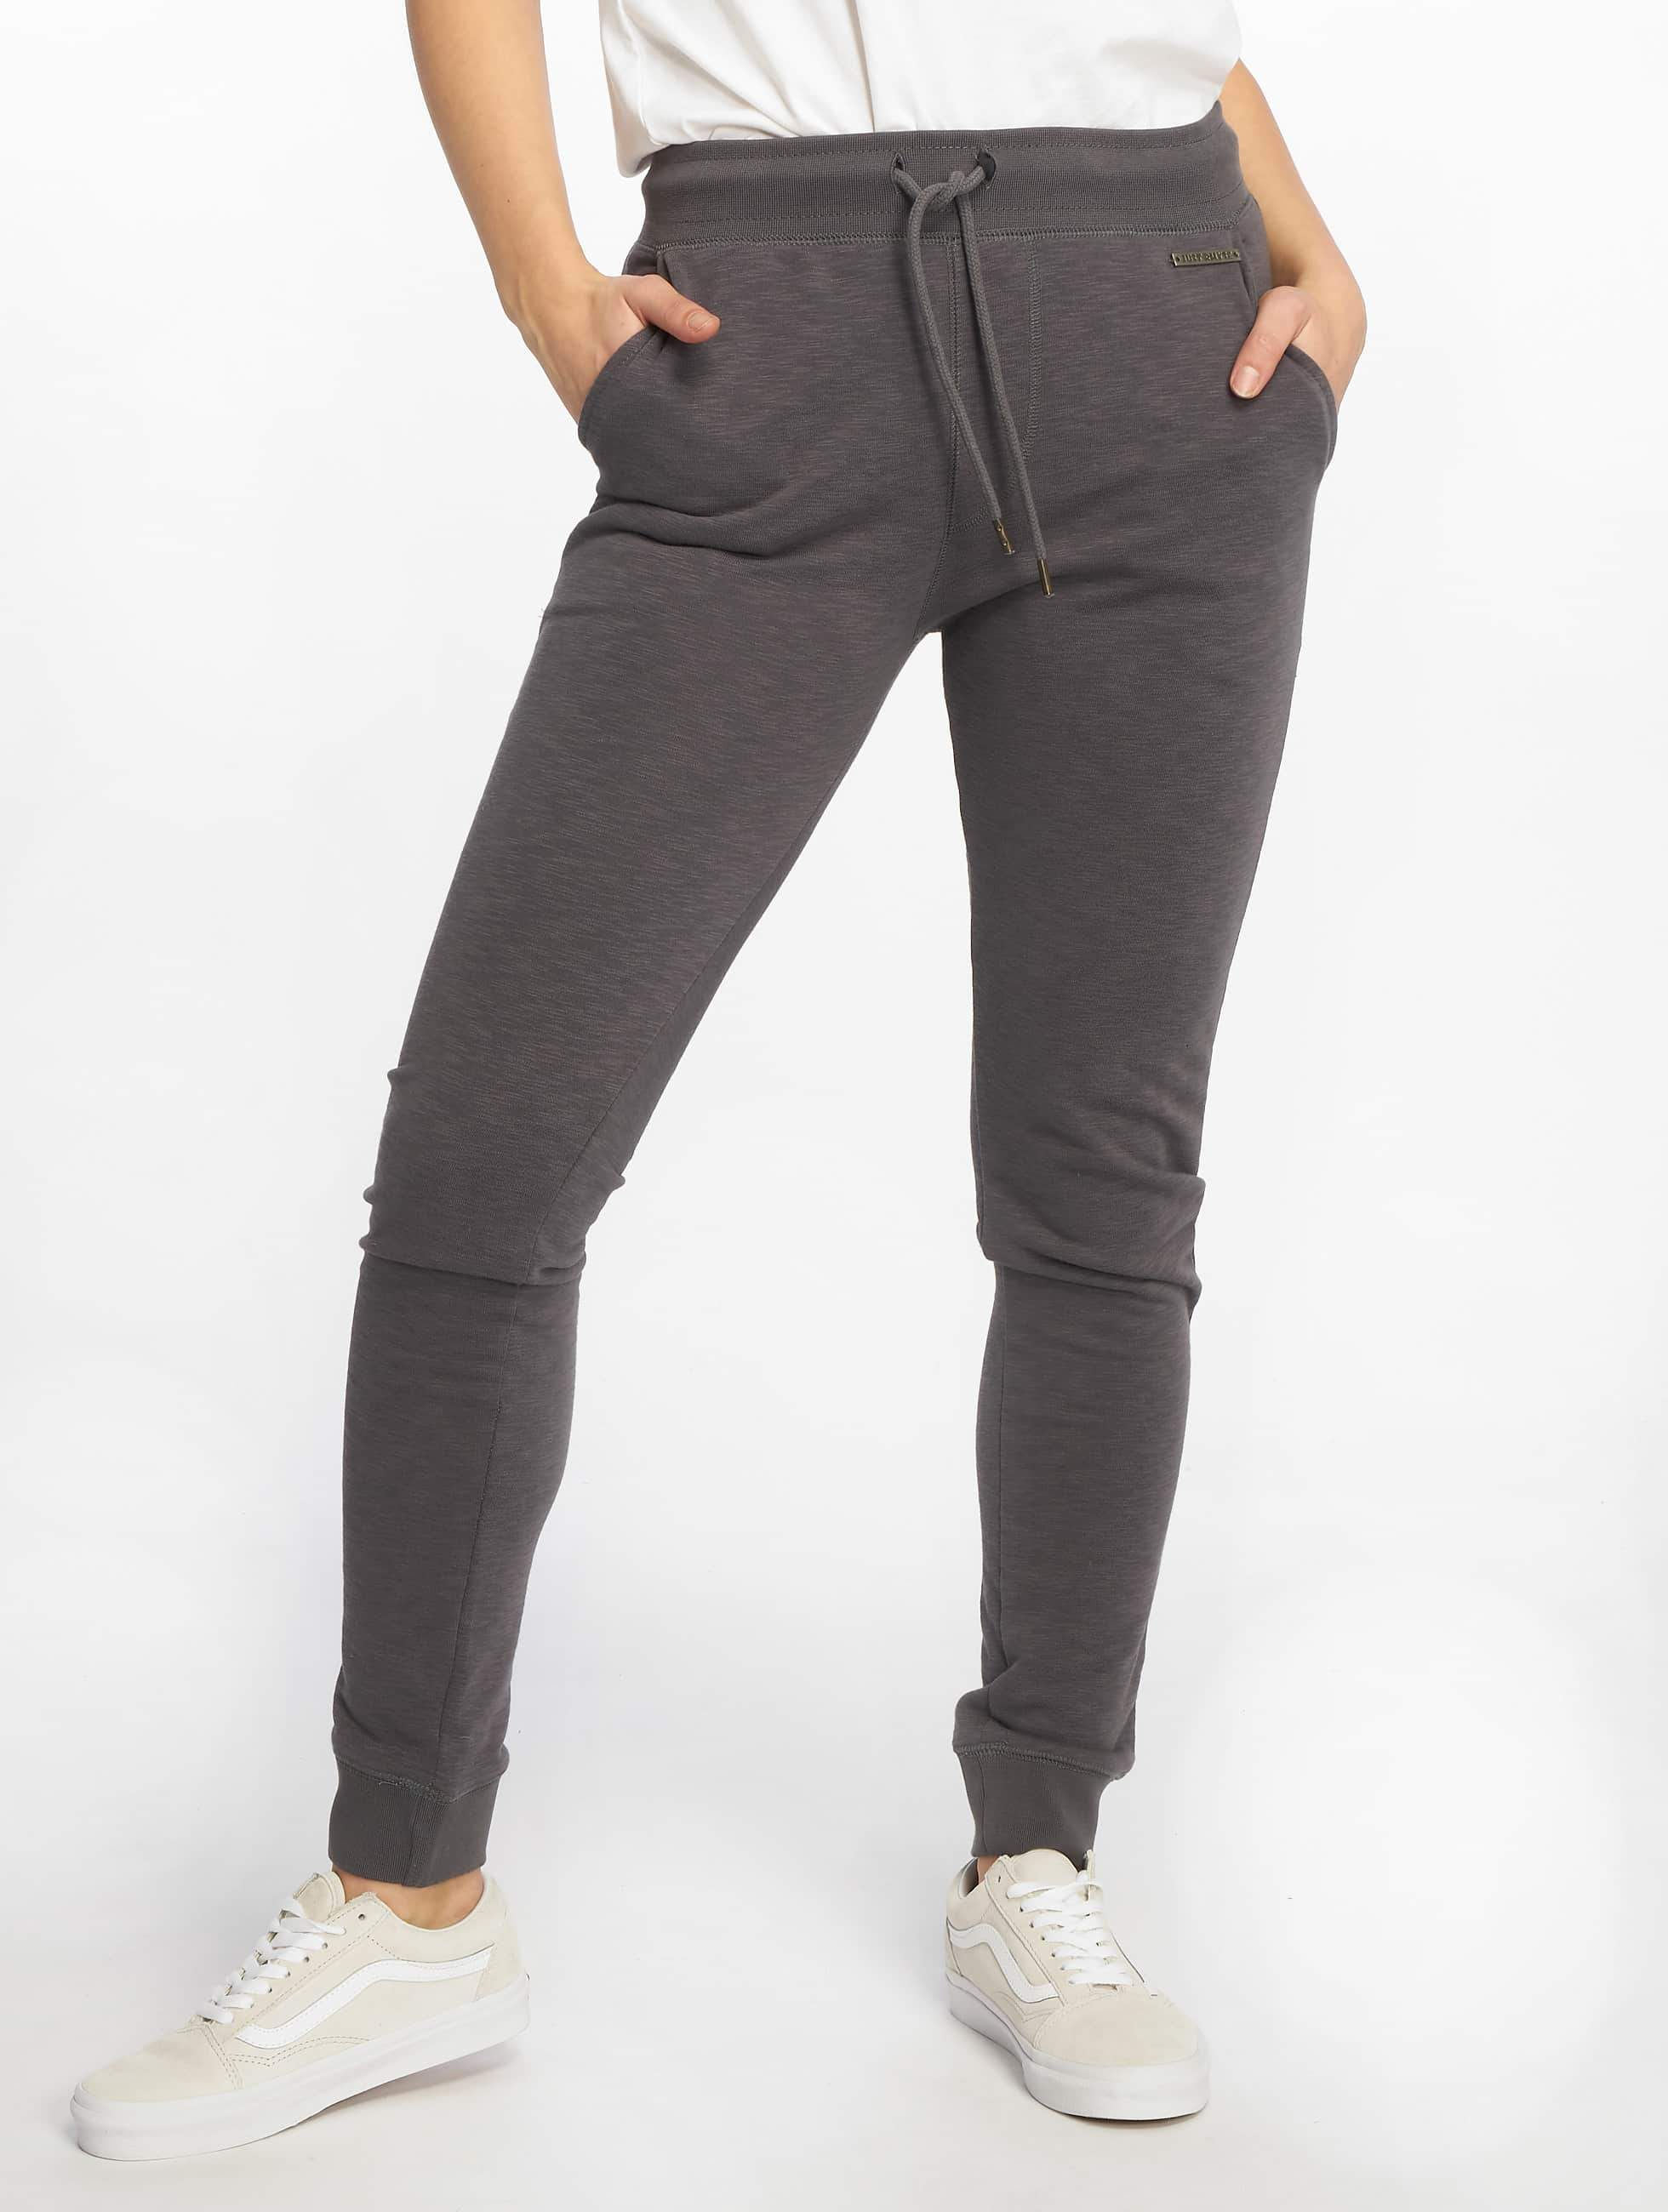 Just Rhyse / Sweat Pant Poppy in grey XS